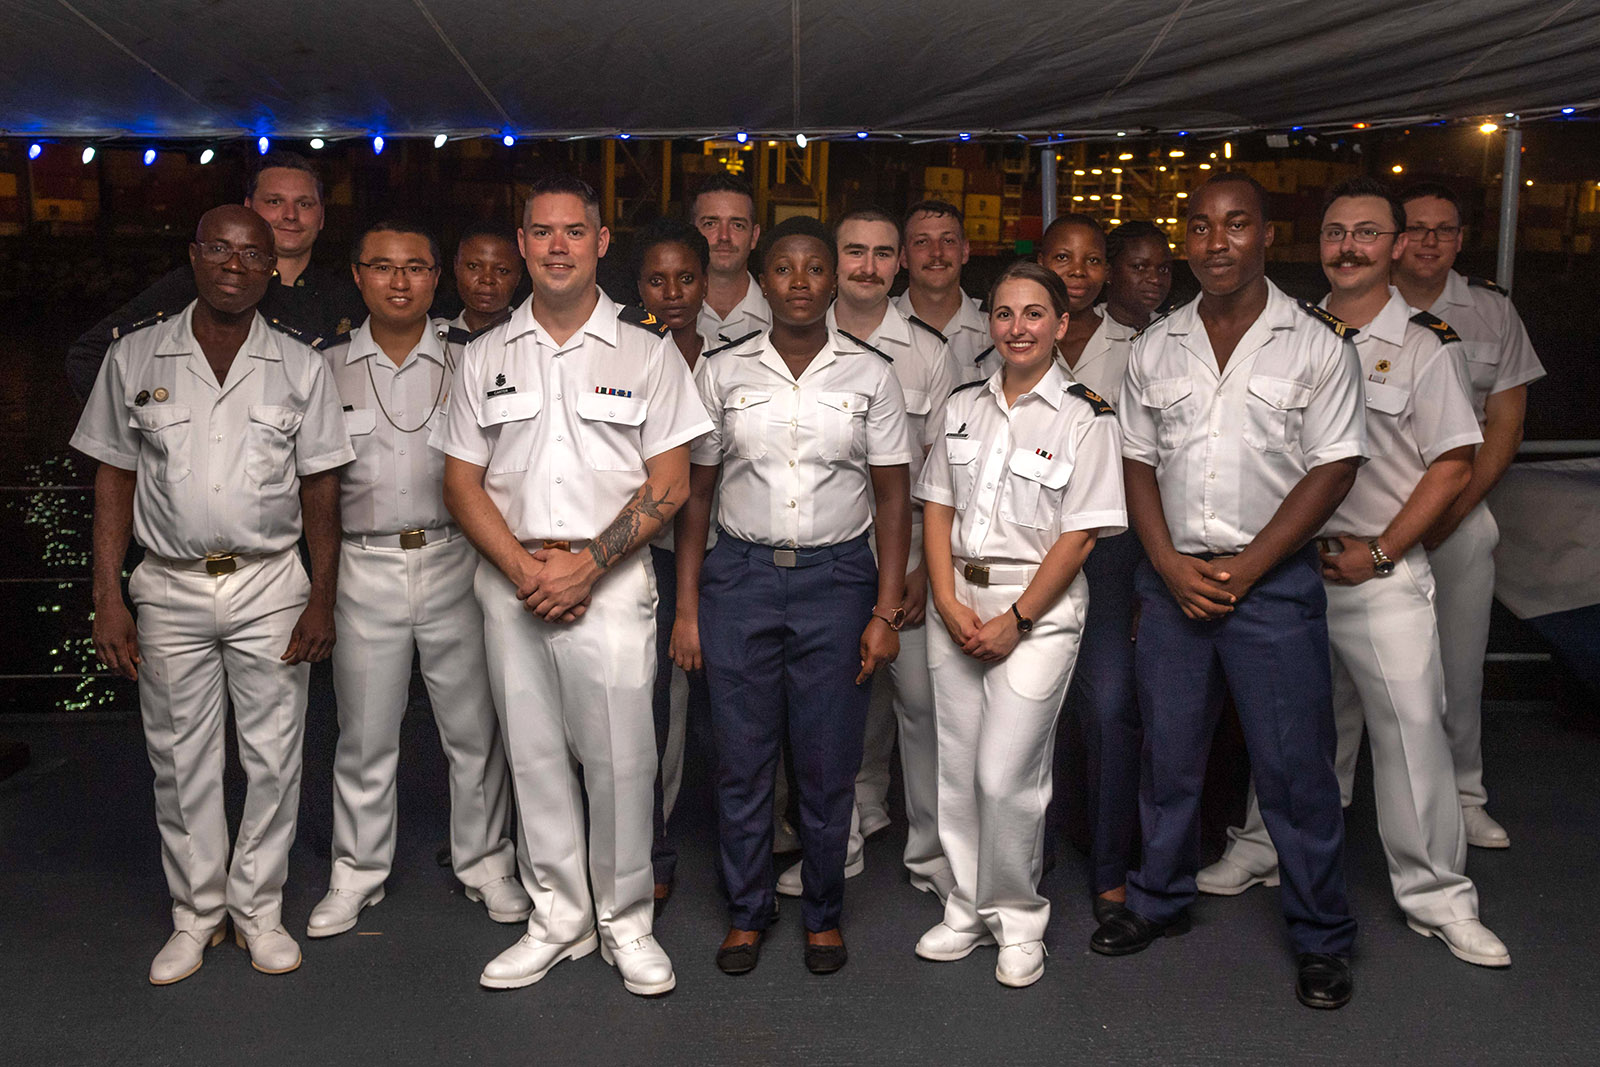 Togolese and Canadian sailors pose for a photo during a reception onboard HMCS Kingston in Lomé, Togo on March 5, 2019.